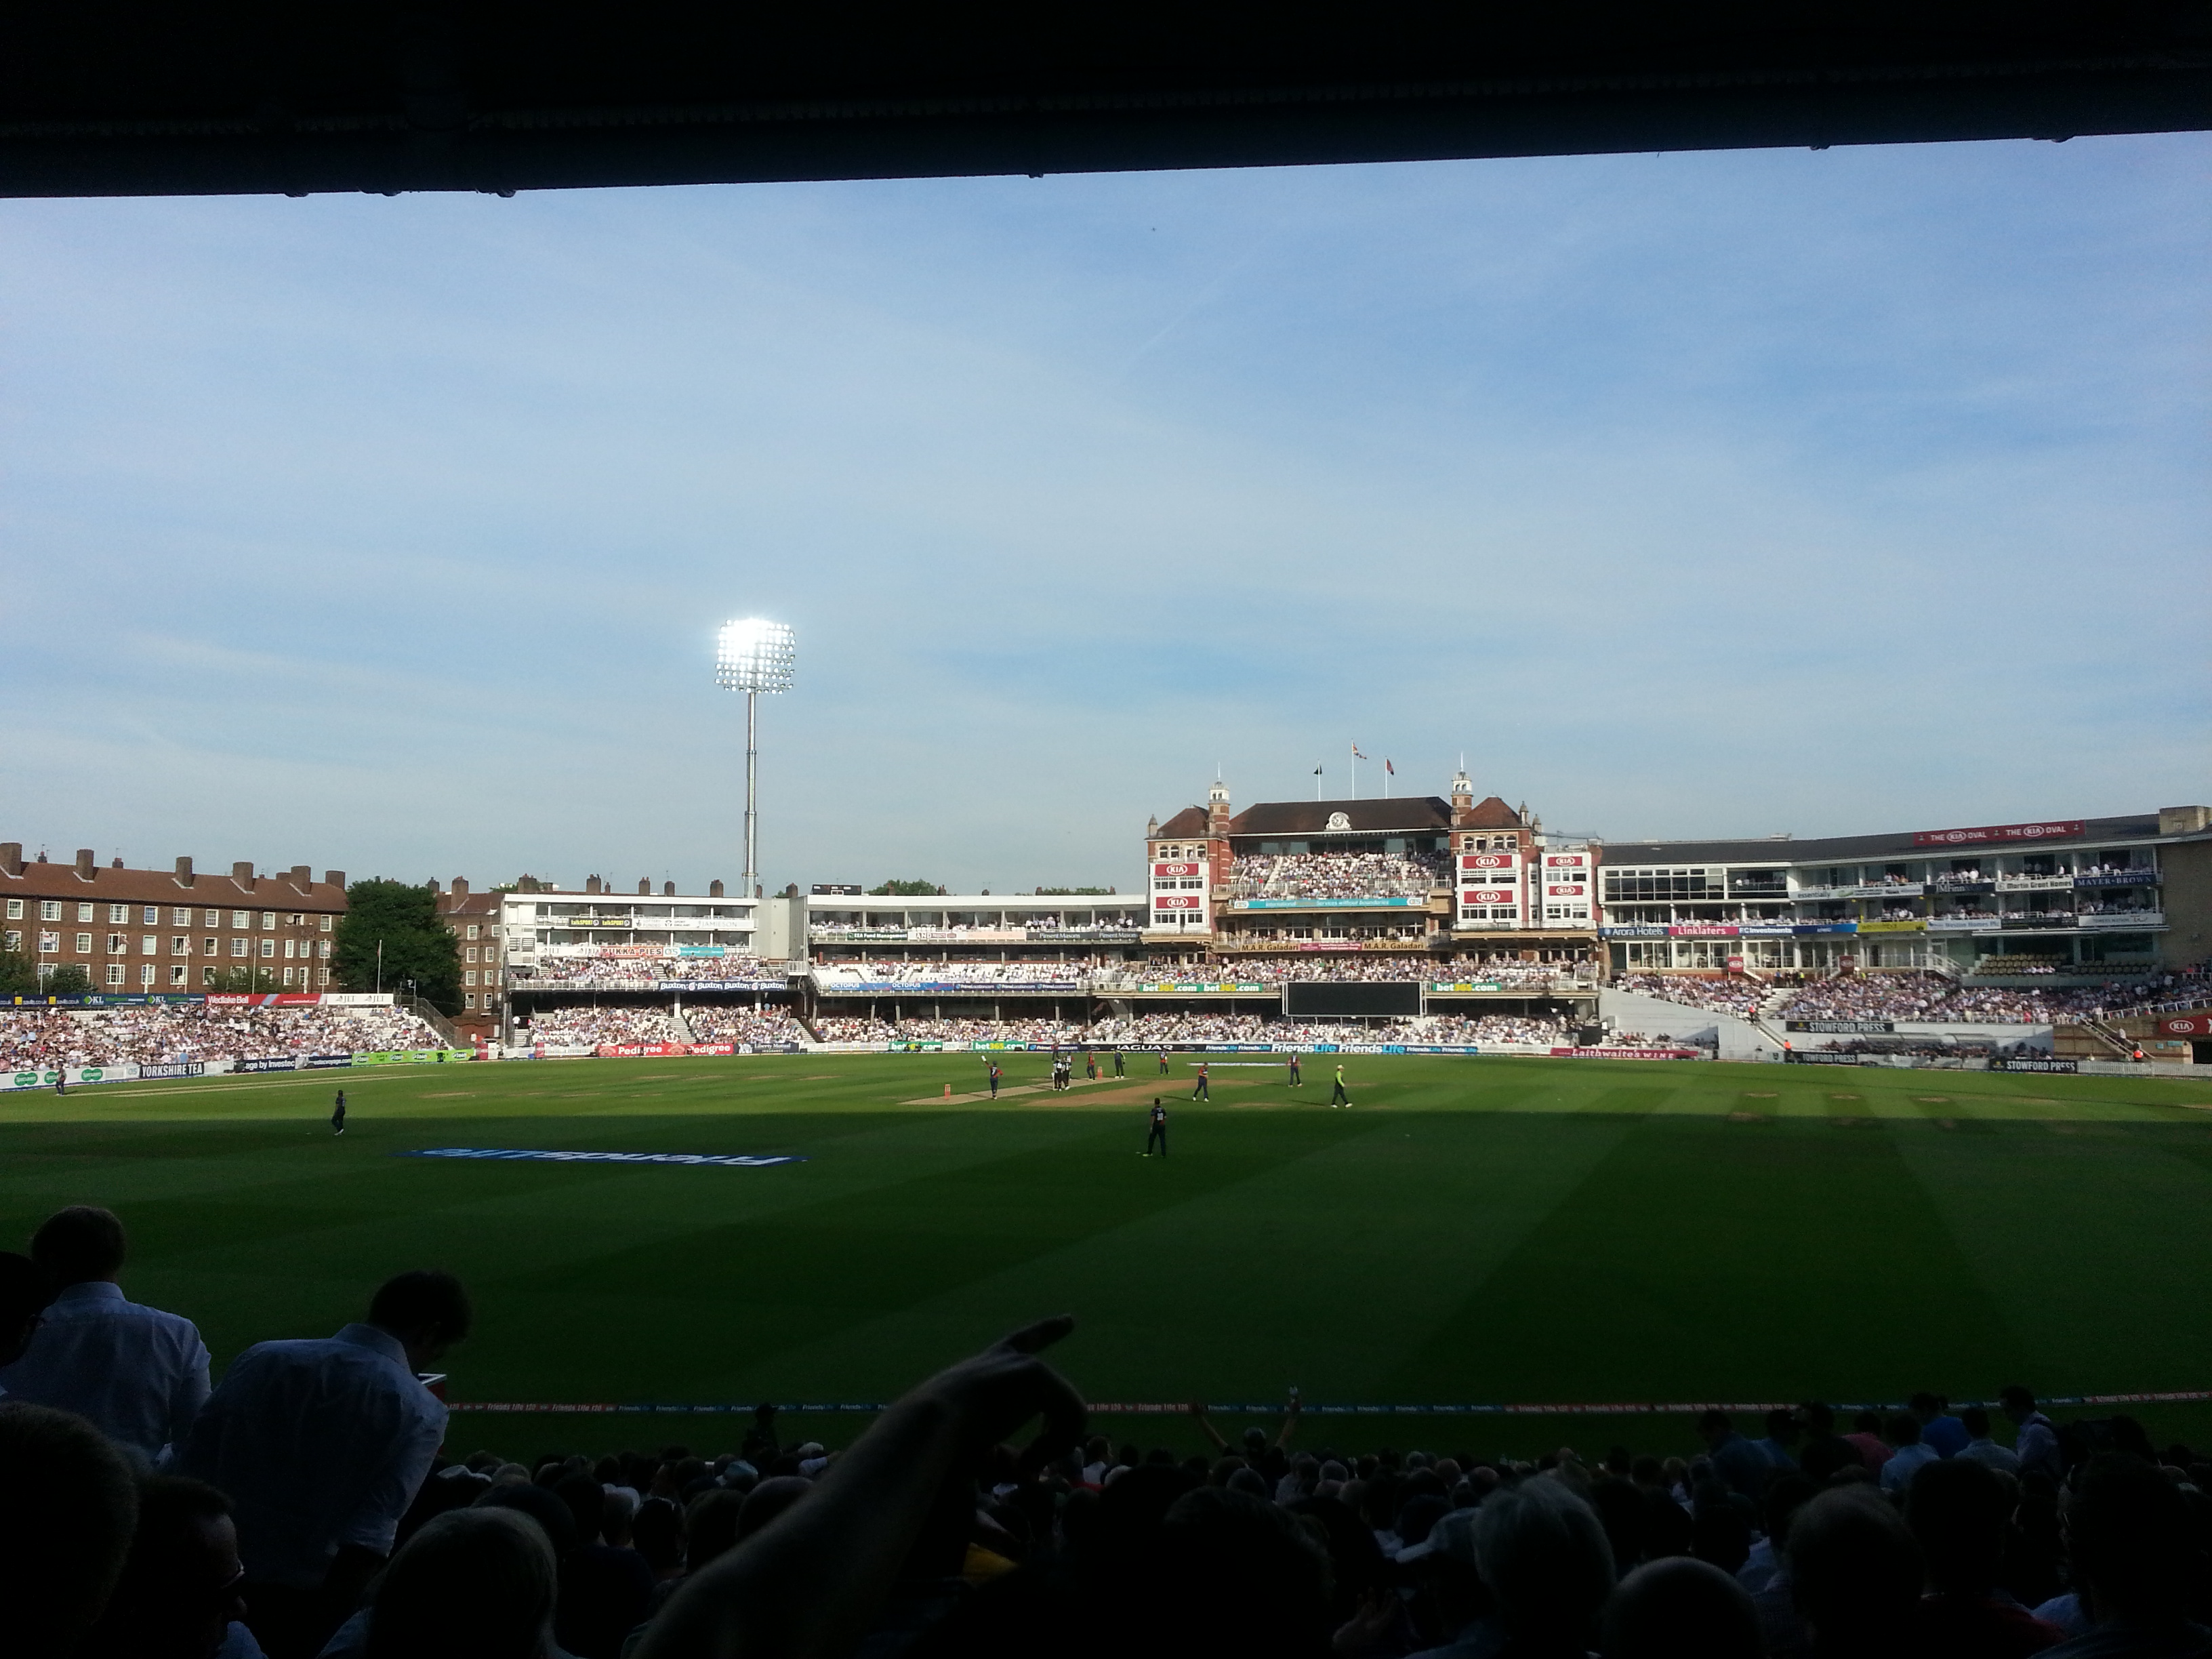 Cricket Experience at the Oval